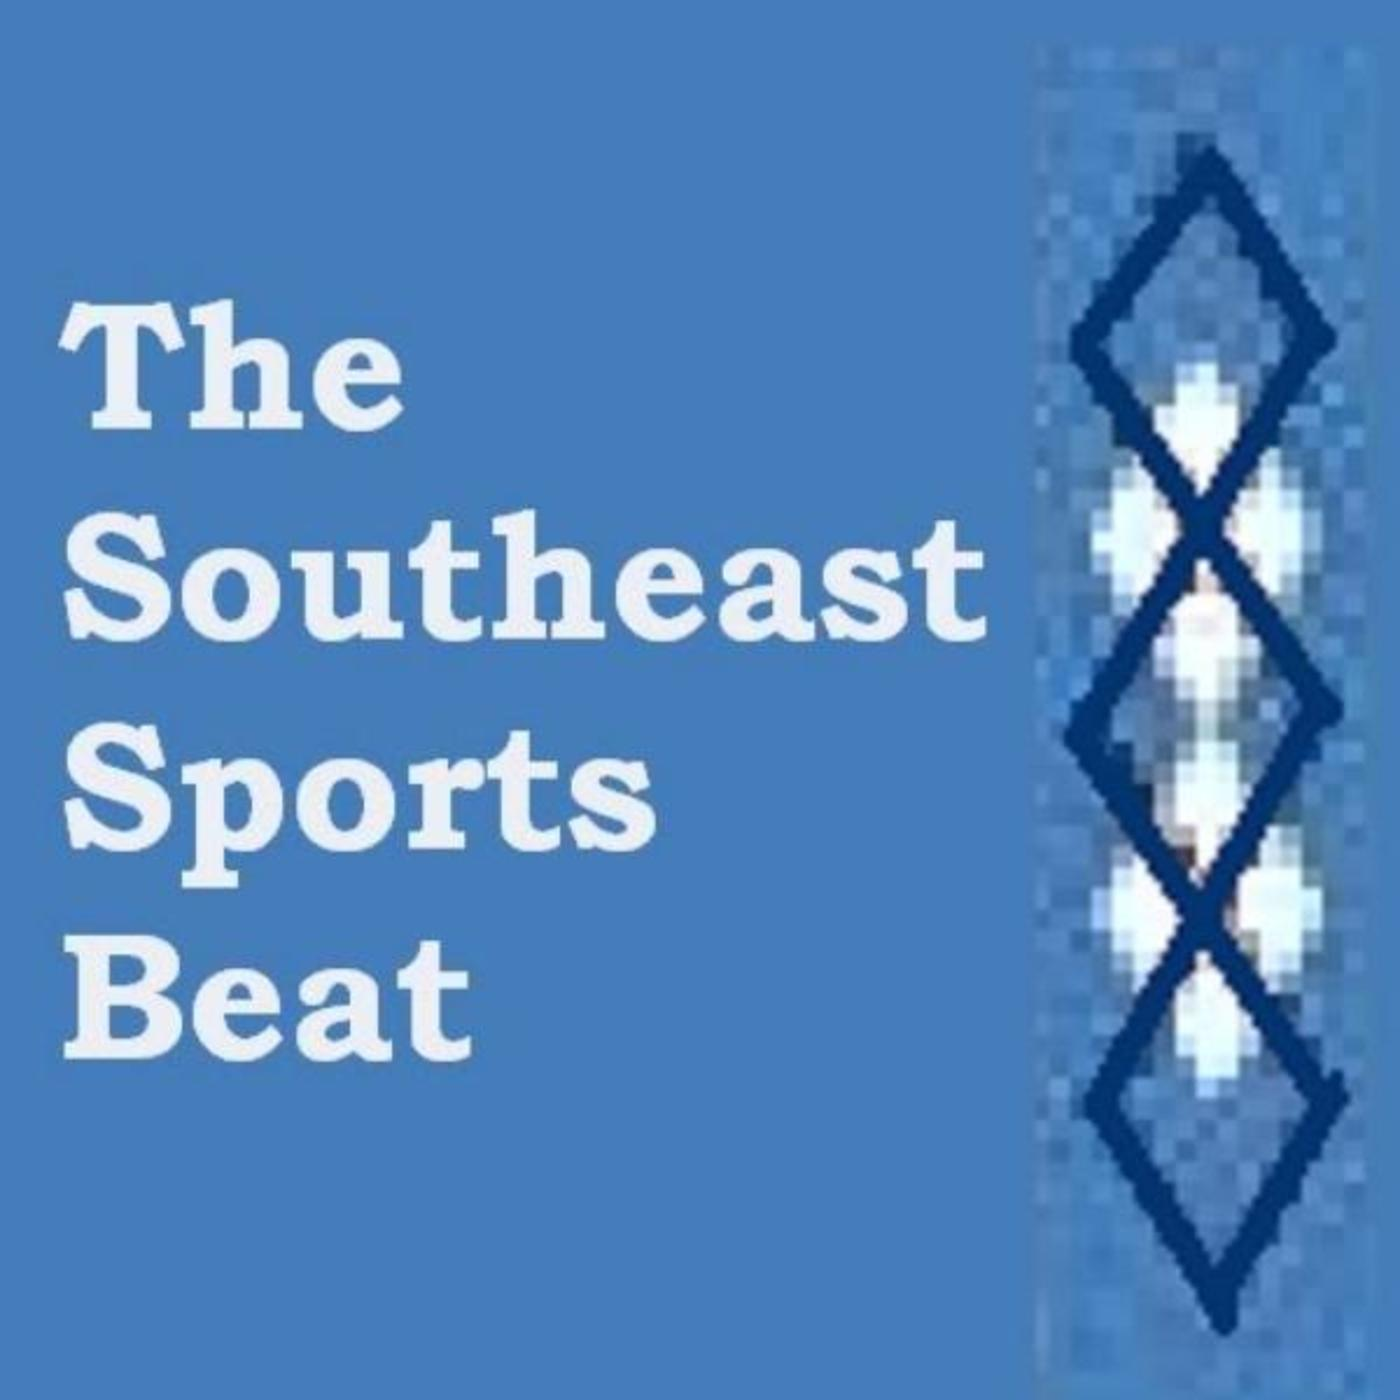 The Southeast Sports Beat